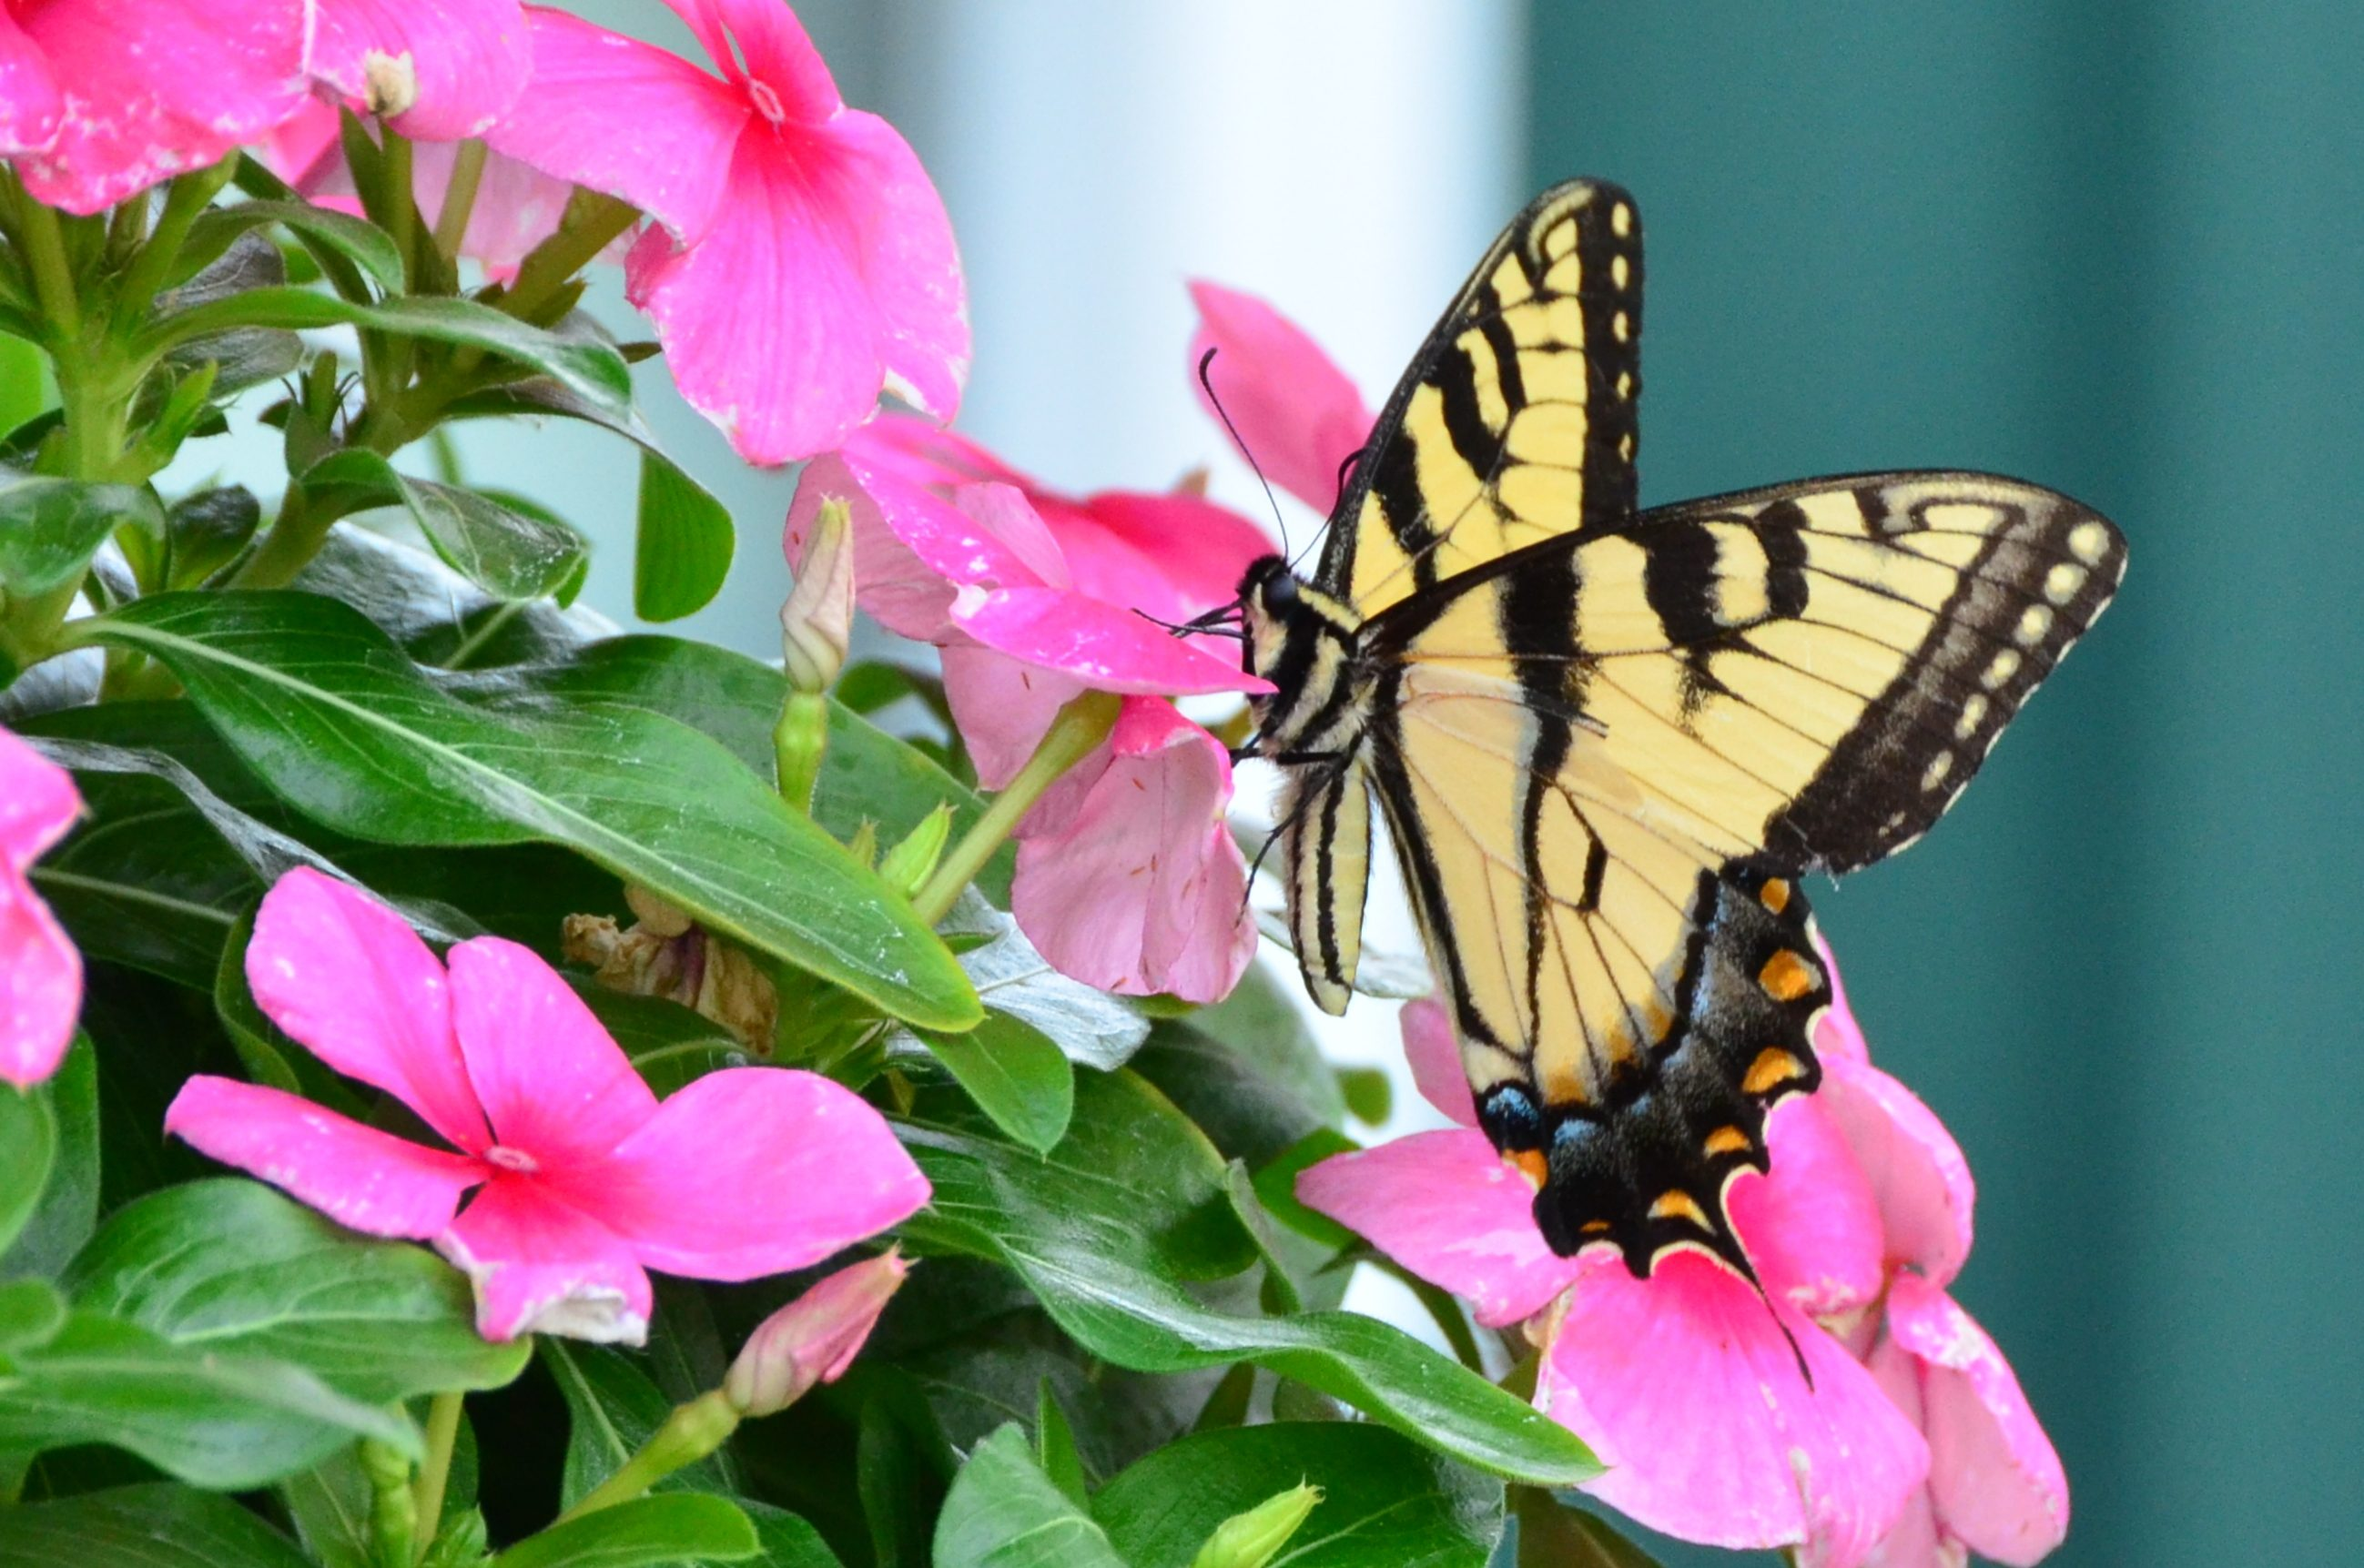 Flowers For Hanging Baskets That Attract Hummingbirds : Hanging flower basket butterfly birds and blooms